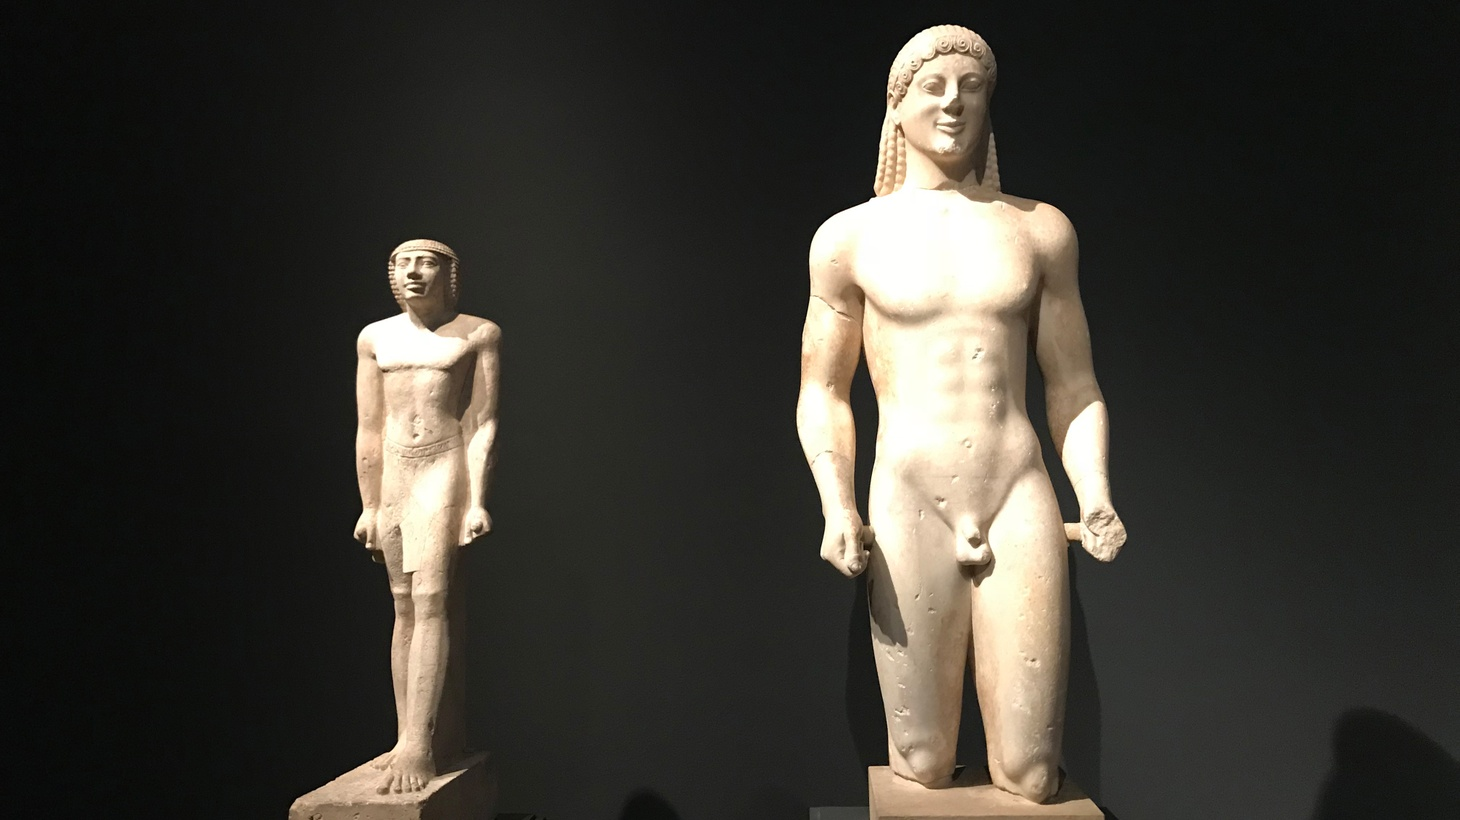 Hunter Drohojowska-Philp learns about surprising connections between the art of Egypt, Greece and Rome